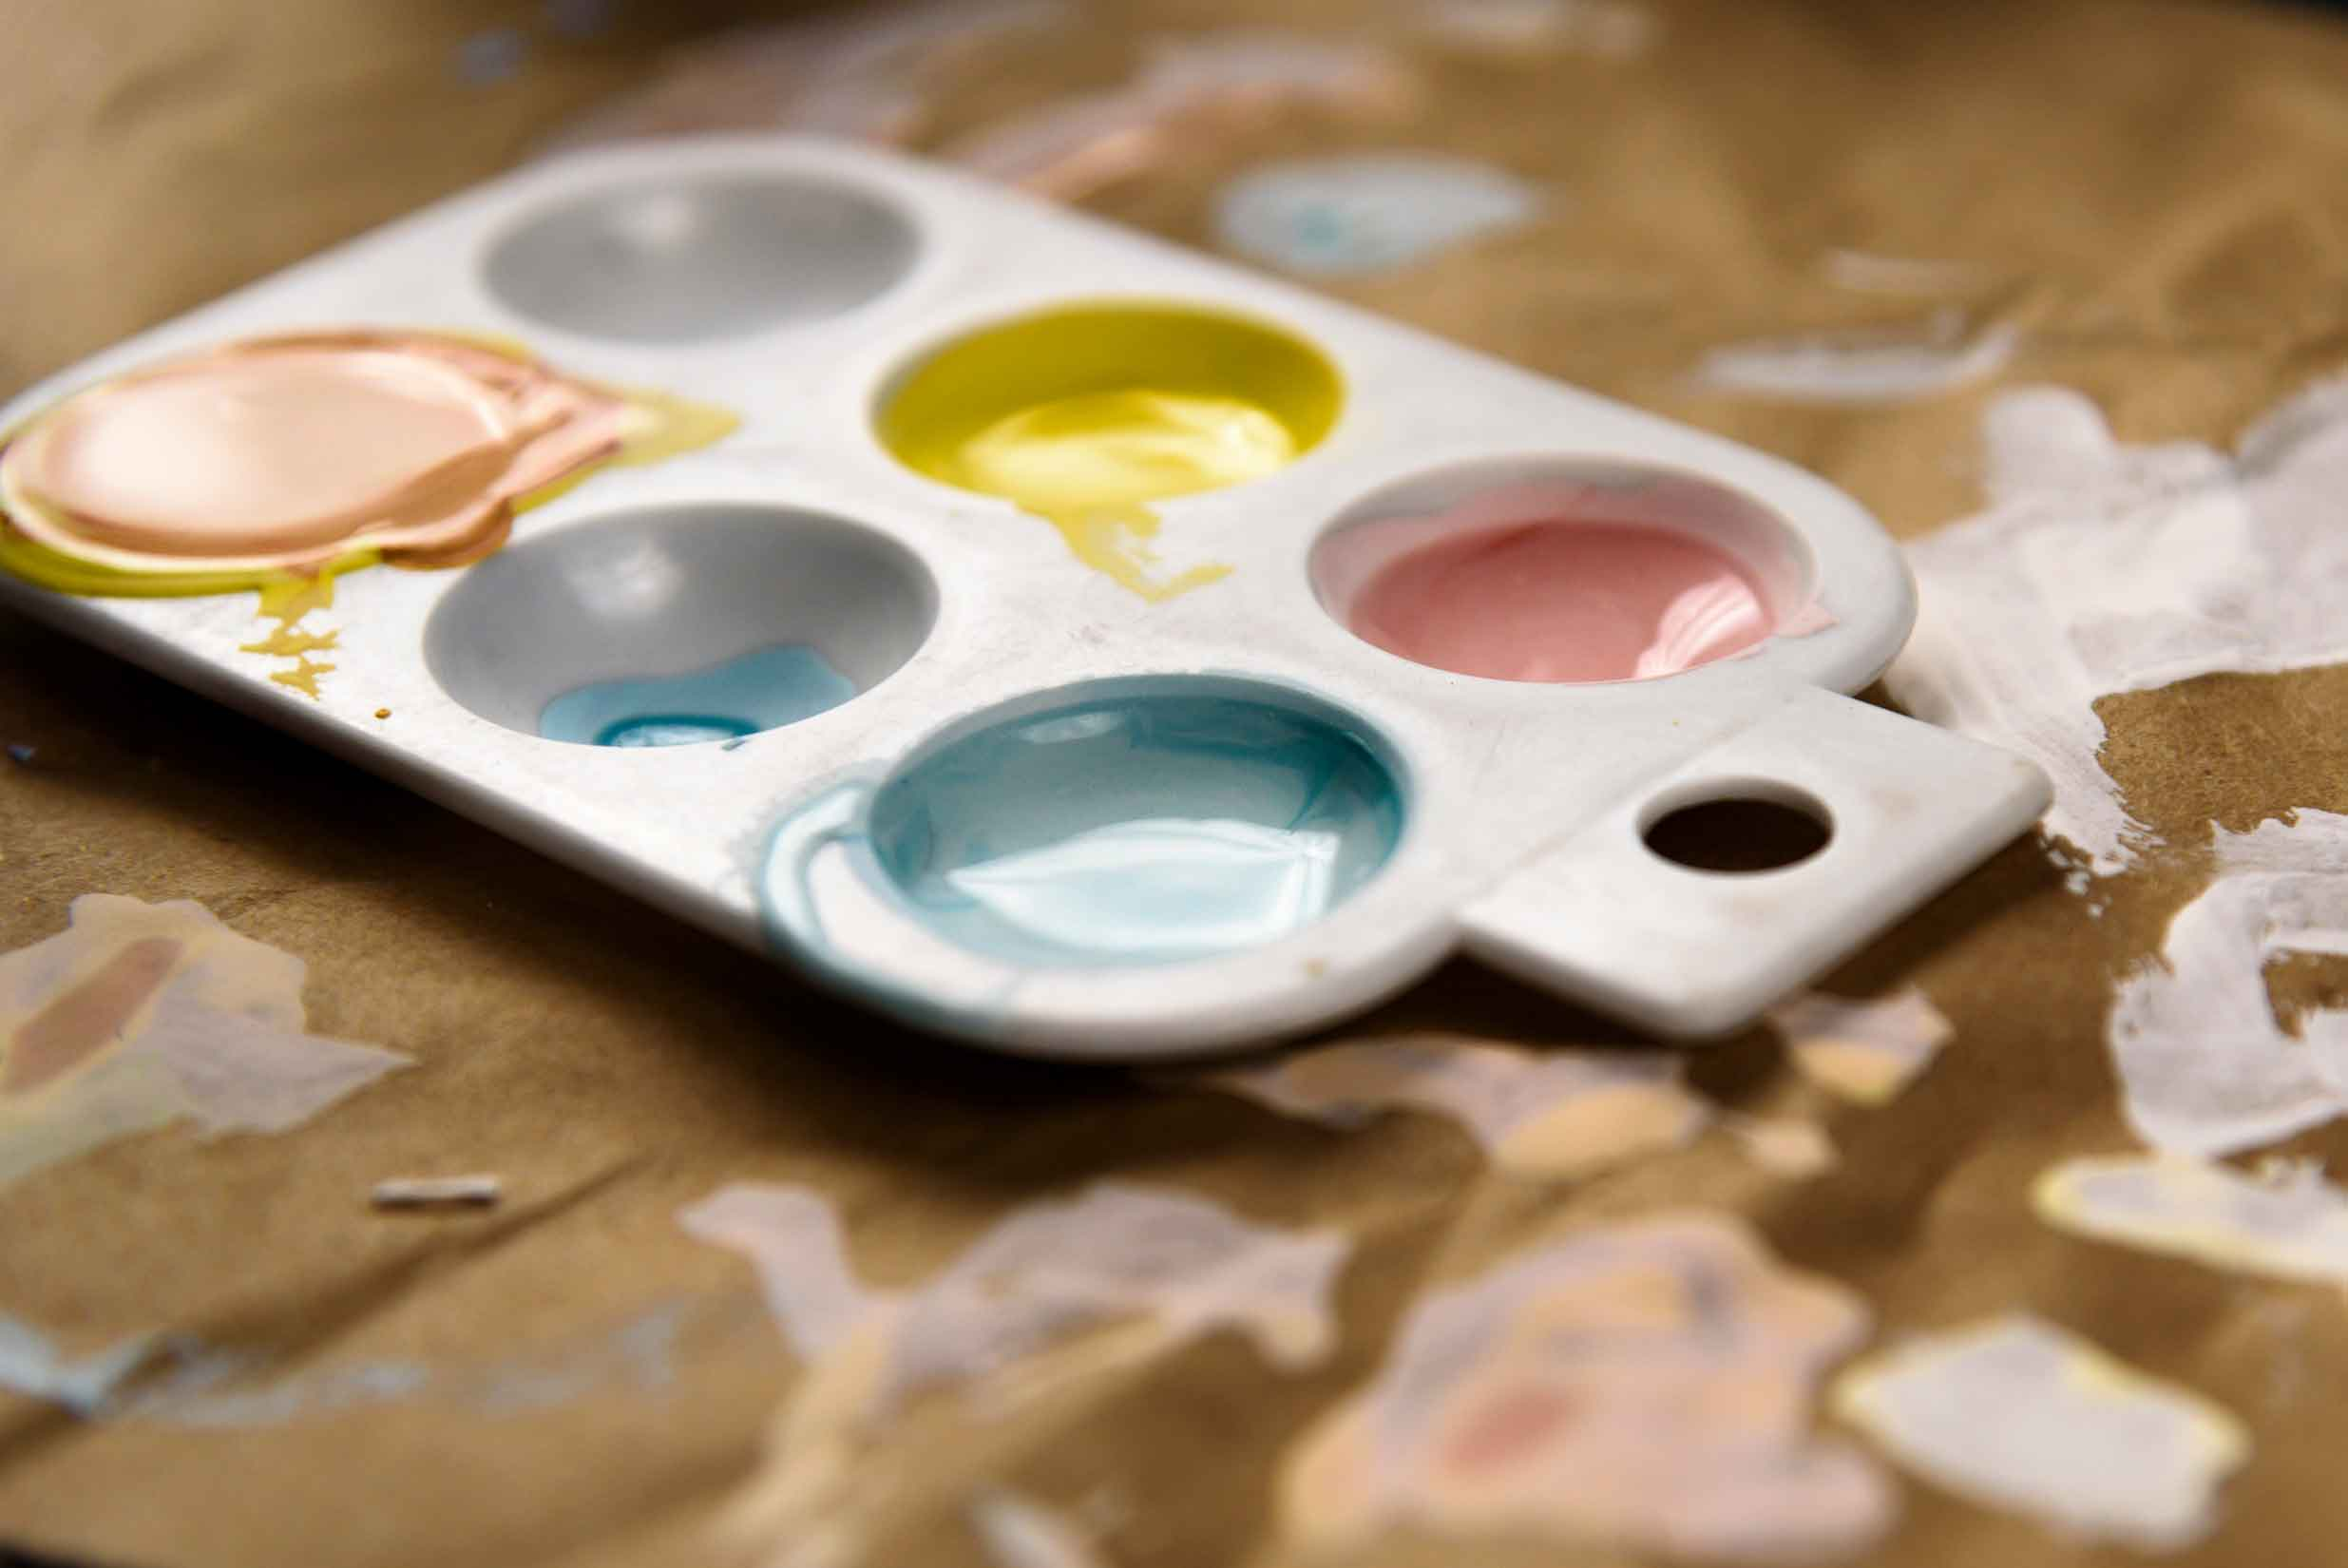 Mini palate of paints mixed and ready to go